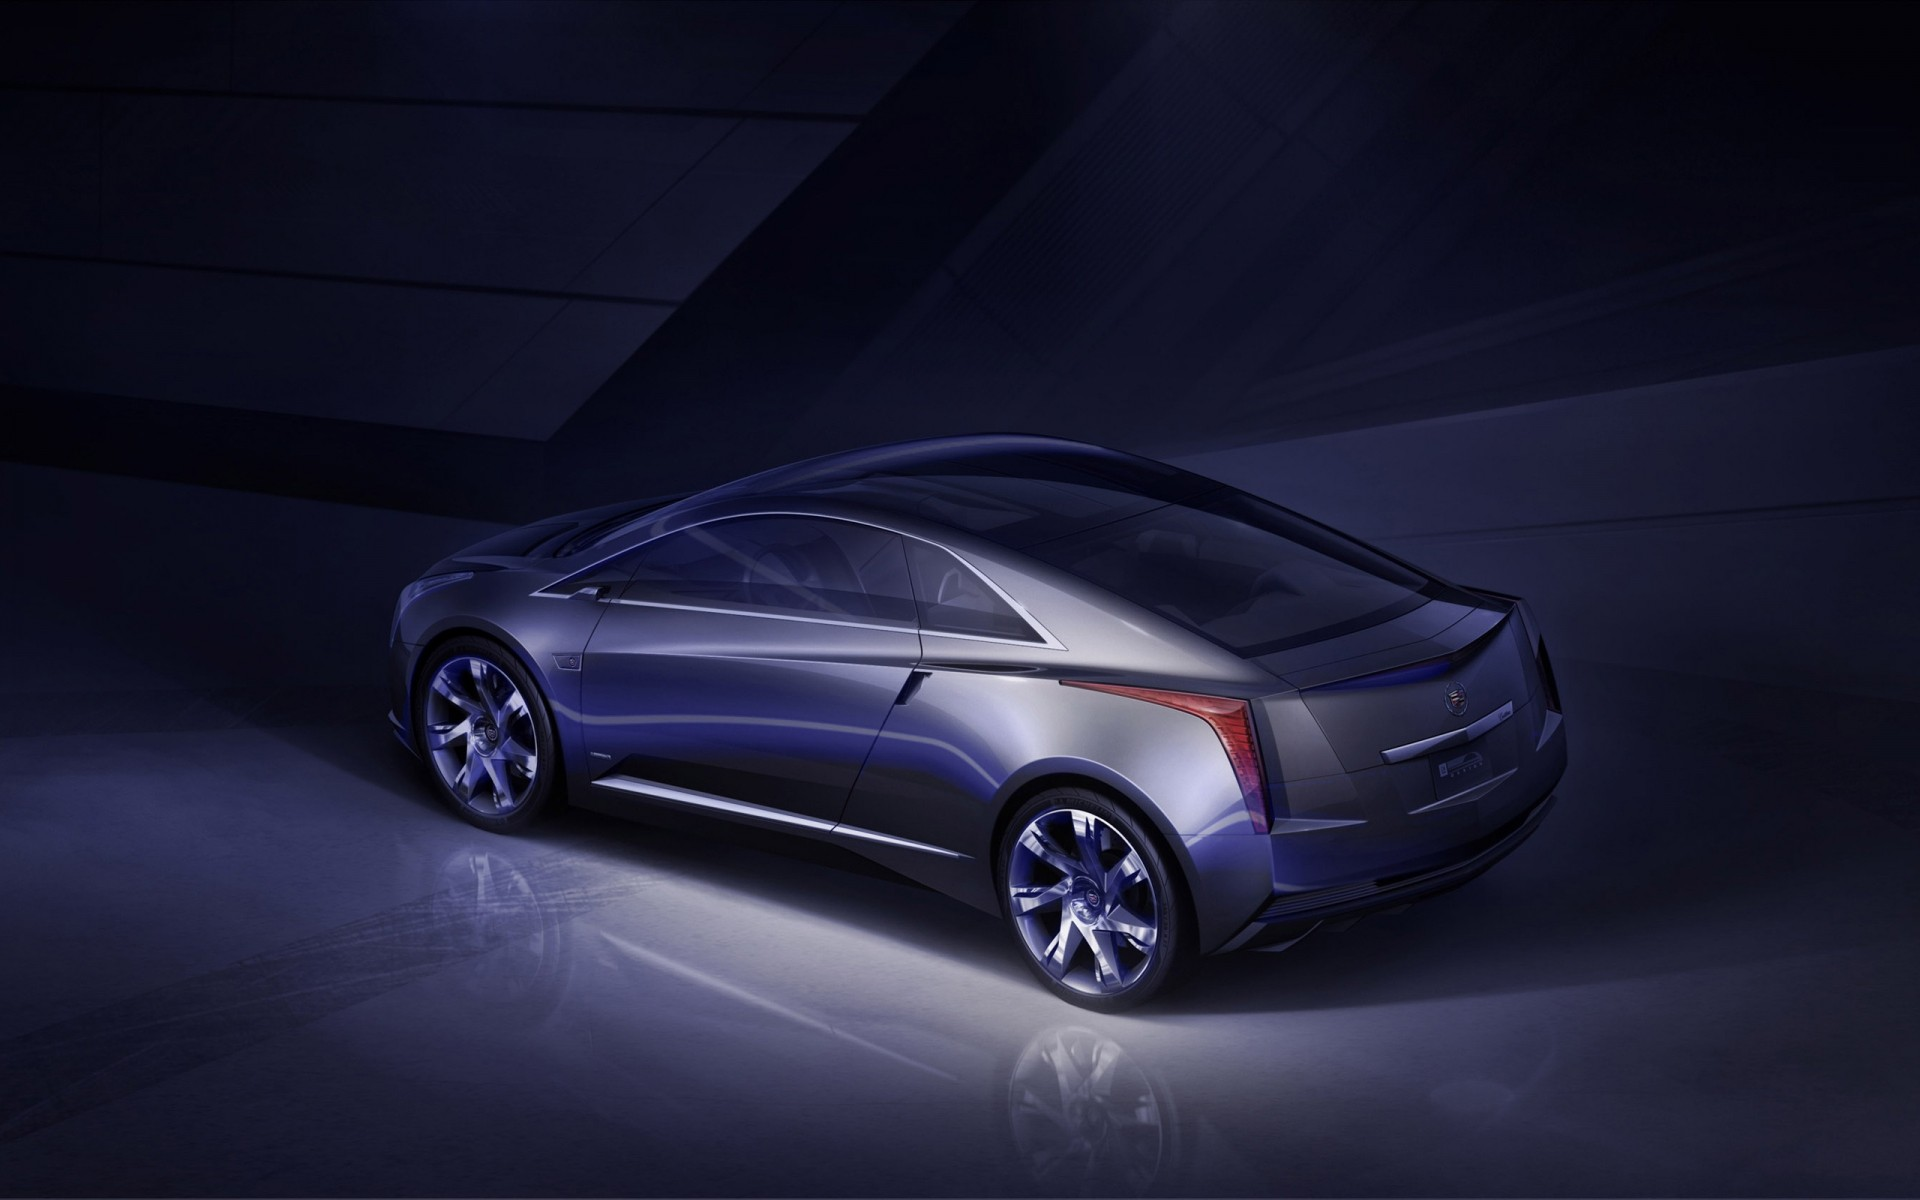 concept cars car vehicle automotive wheel blacktop pavement hood coupe sedan transportation system asphalt noon hurry action cadillac converj cadillac concept cadillac concept car